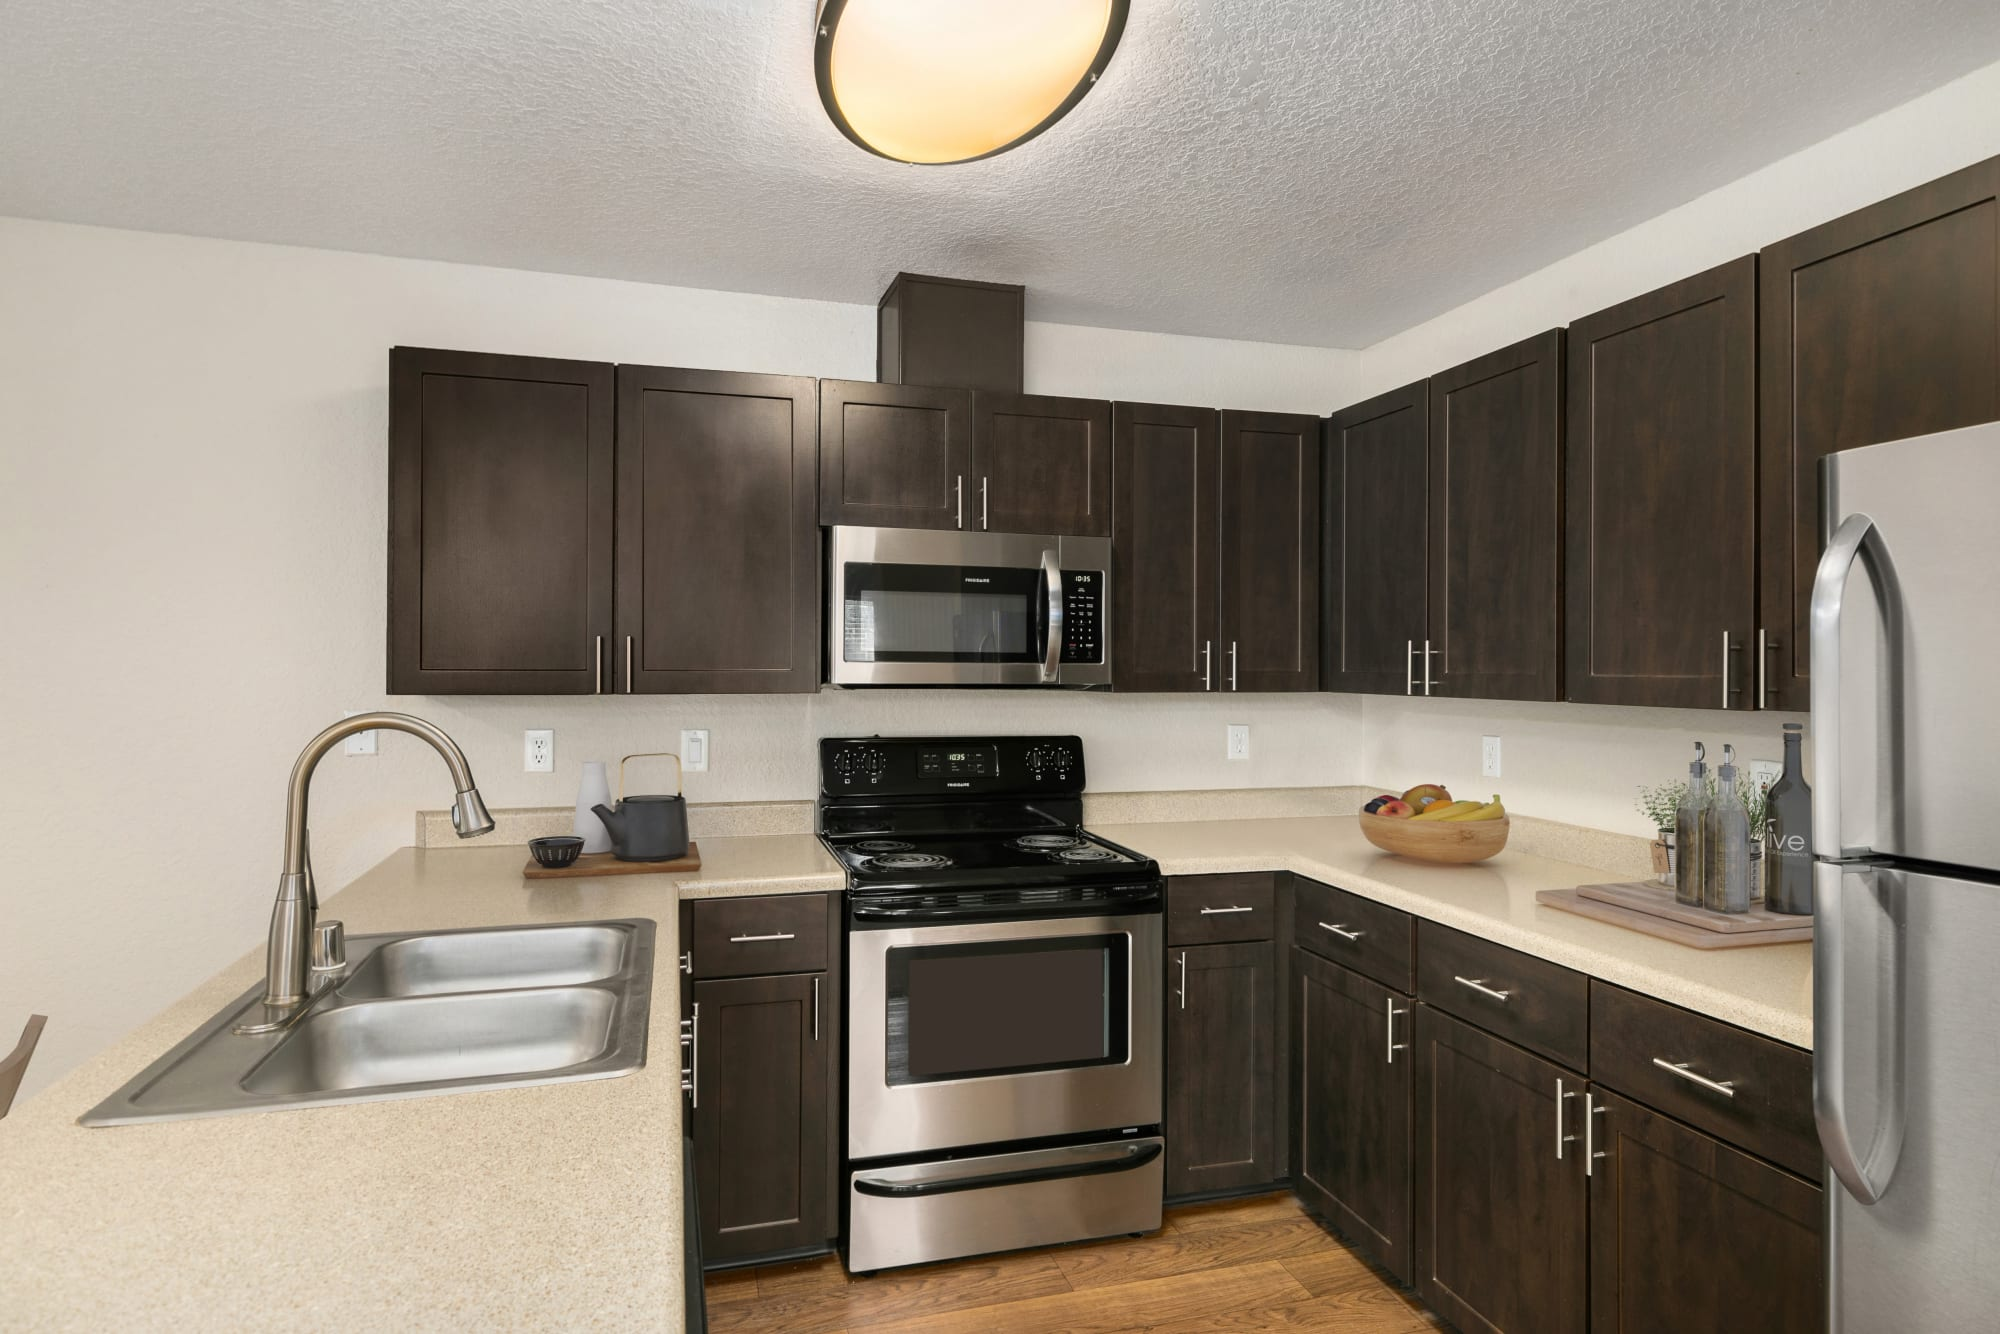 Renovated kitchen with espresso cabinetry at Carriage Park Apartments in Vancouver, Washington